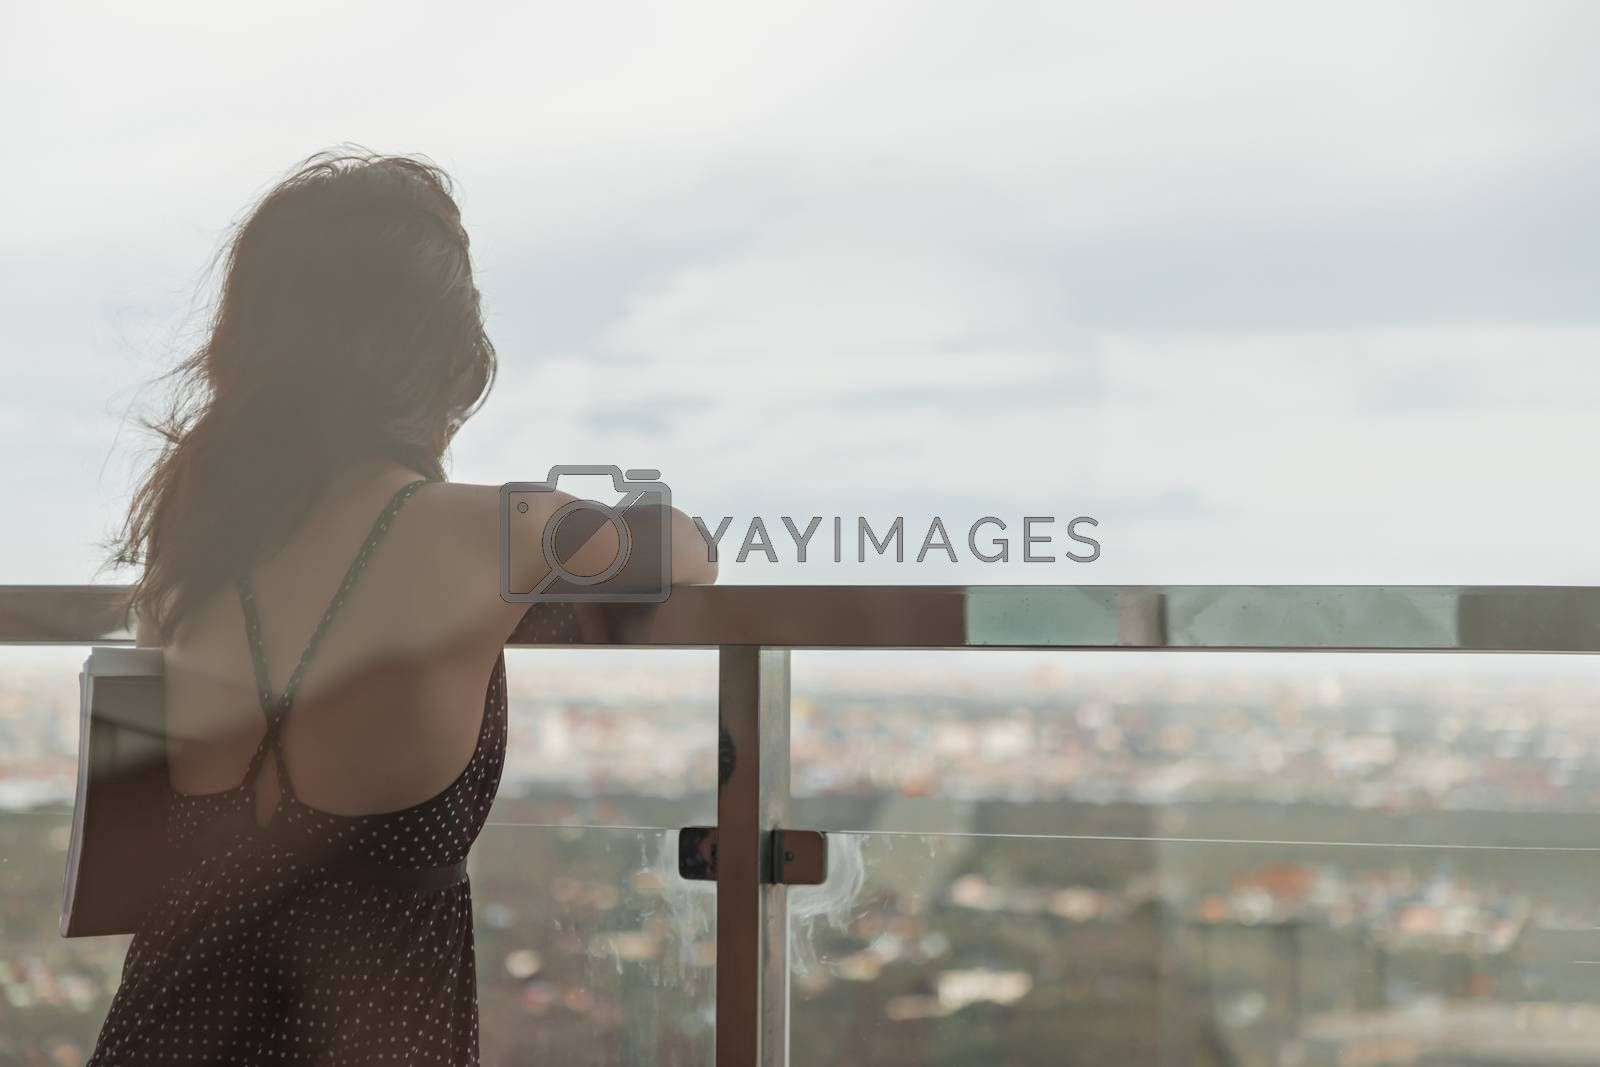 Bangkok, Thailand - Jul 19, 2020 : Young women standing resting and looking through at cityscape with skyscrapers in balcony view with clear sky before sunset. Moments of joy and relaxation atmosphere. Copy space.